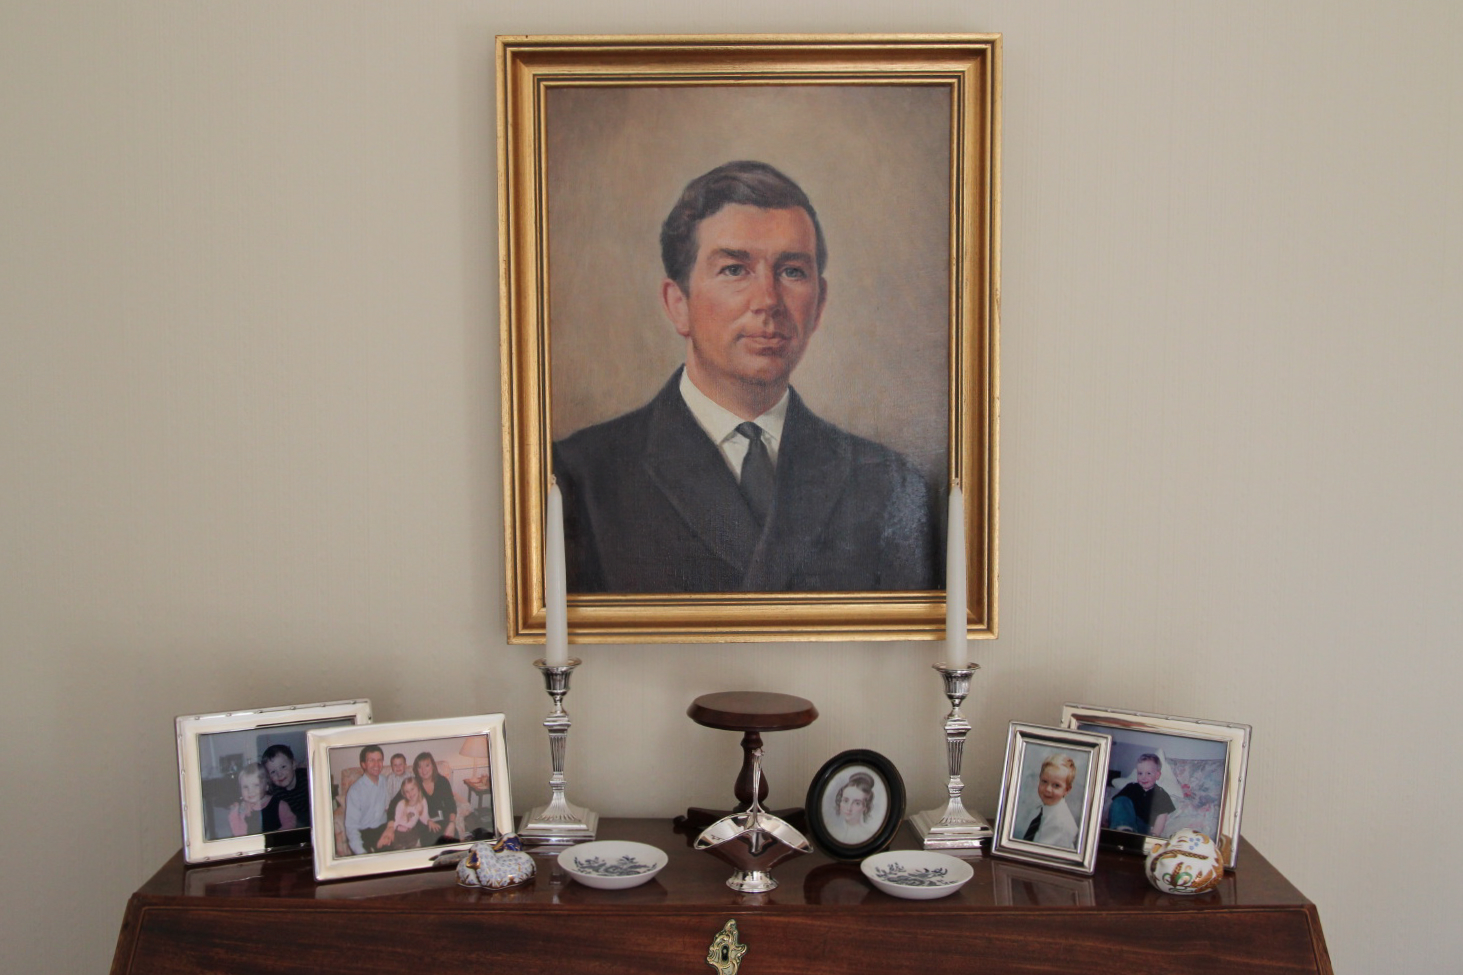 Miniature of Julia Richmond by George on the occasion of their wedding - and portrait of Micheal Buchanan and family photos